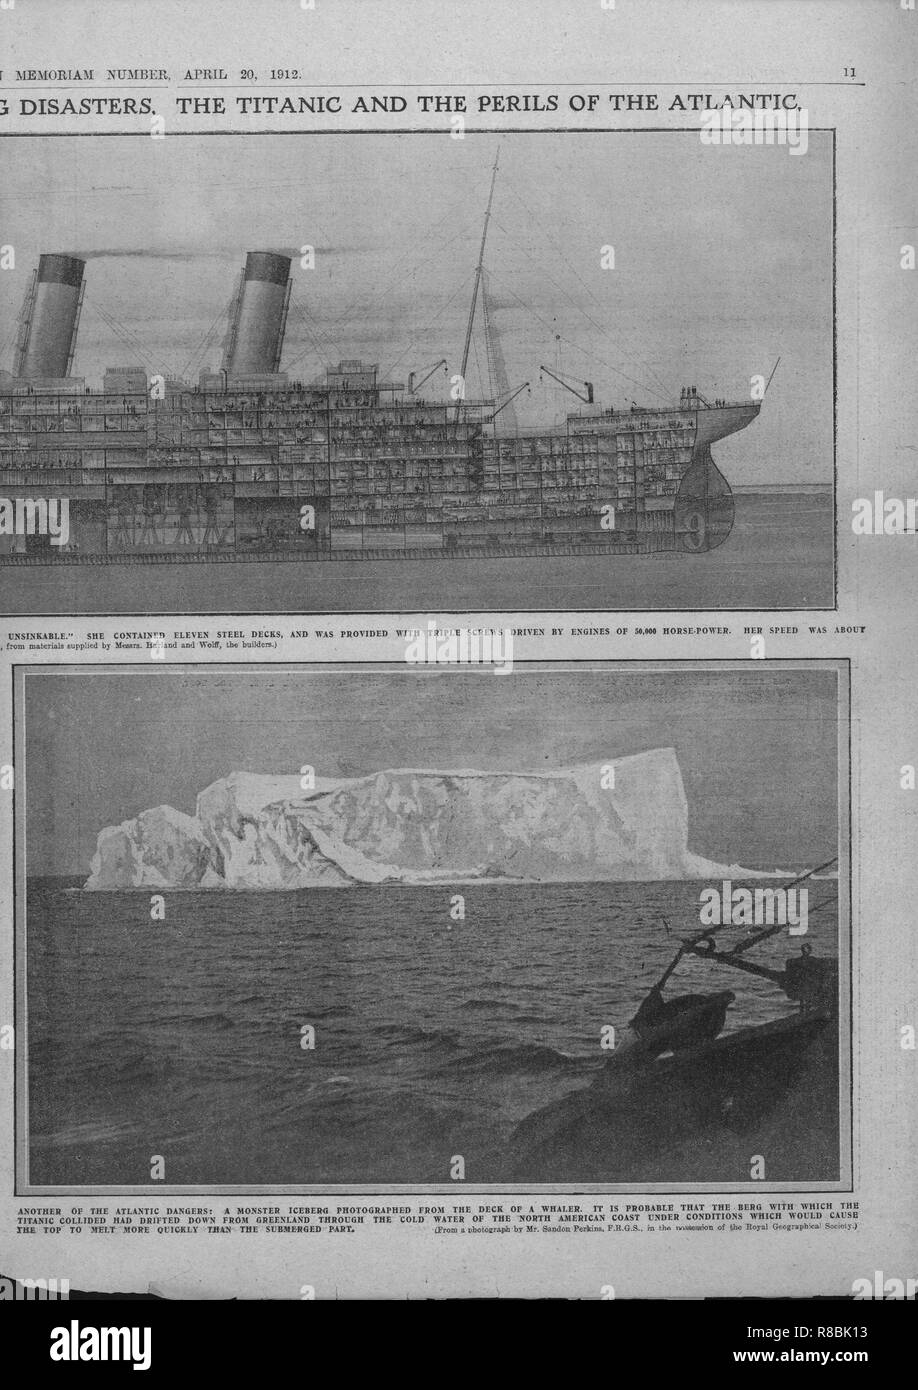 Sectional Diagram Of The Titanic And Iceberg April 20 1912